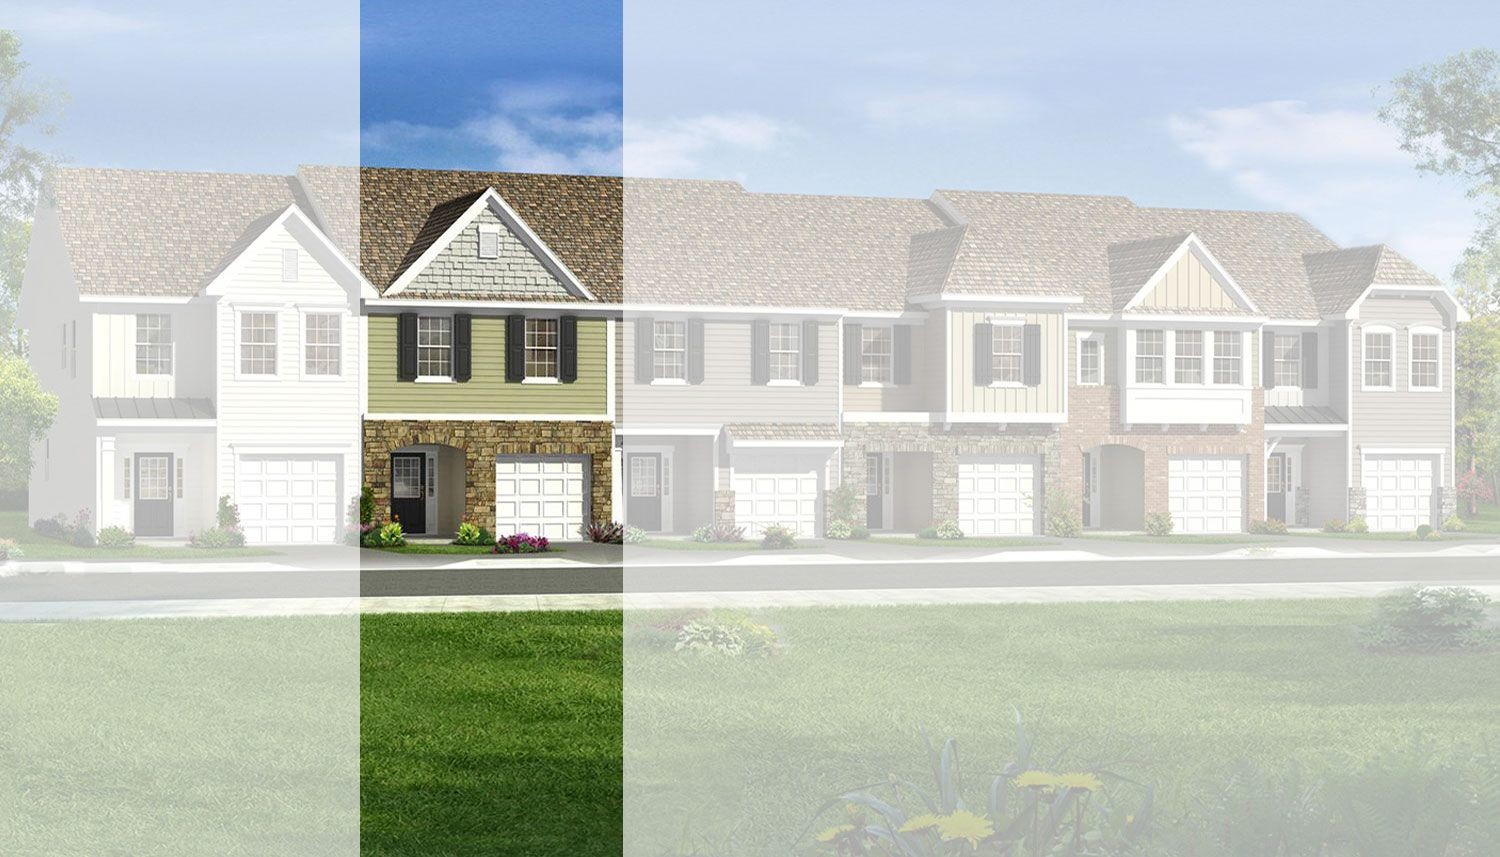 Move In Ready New Home In Malory Square at Camelot Village Community